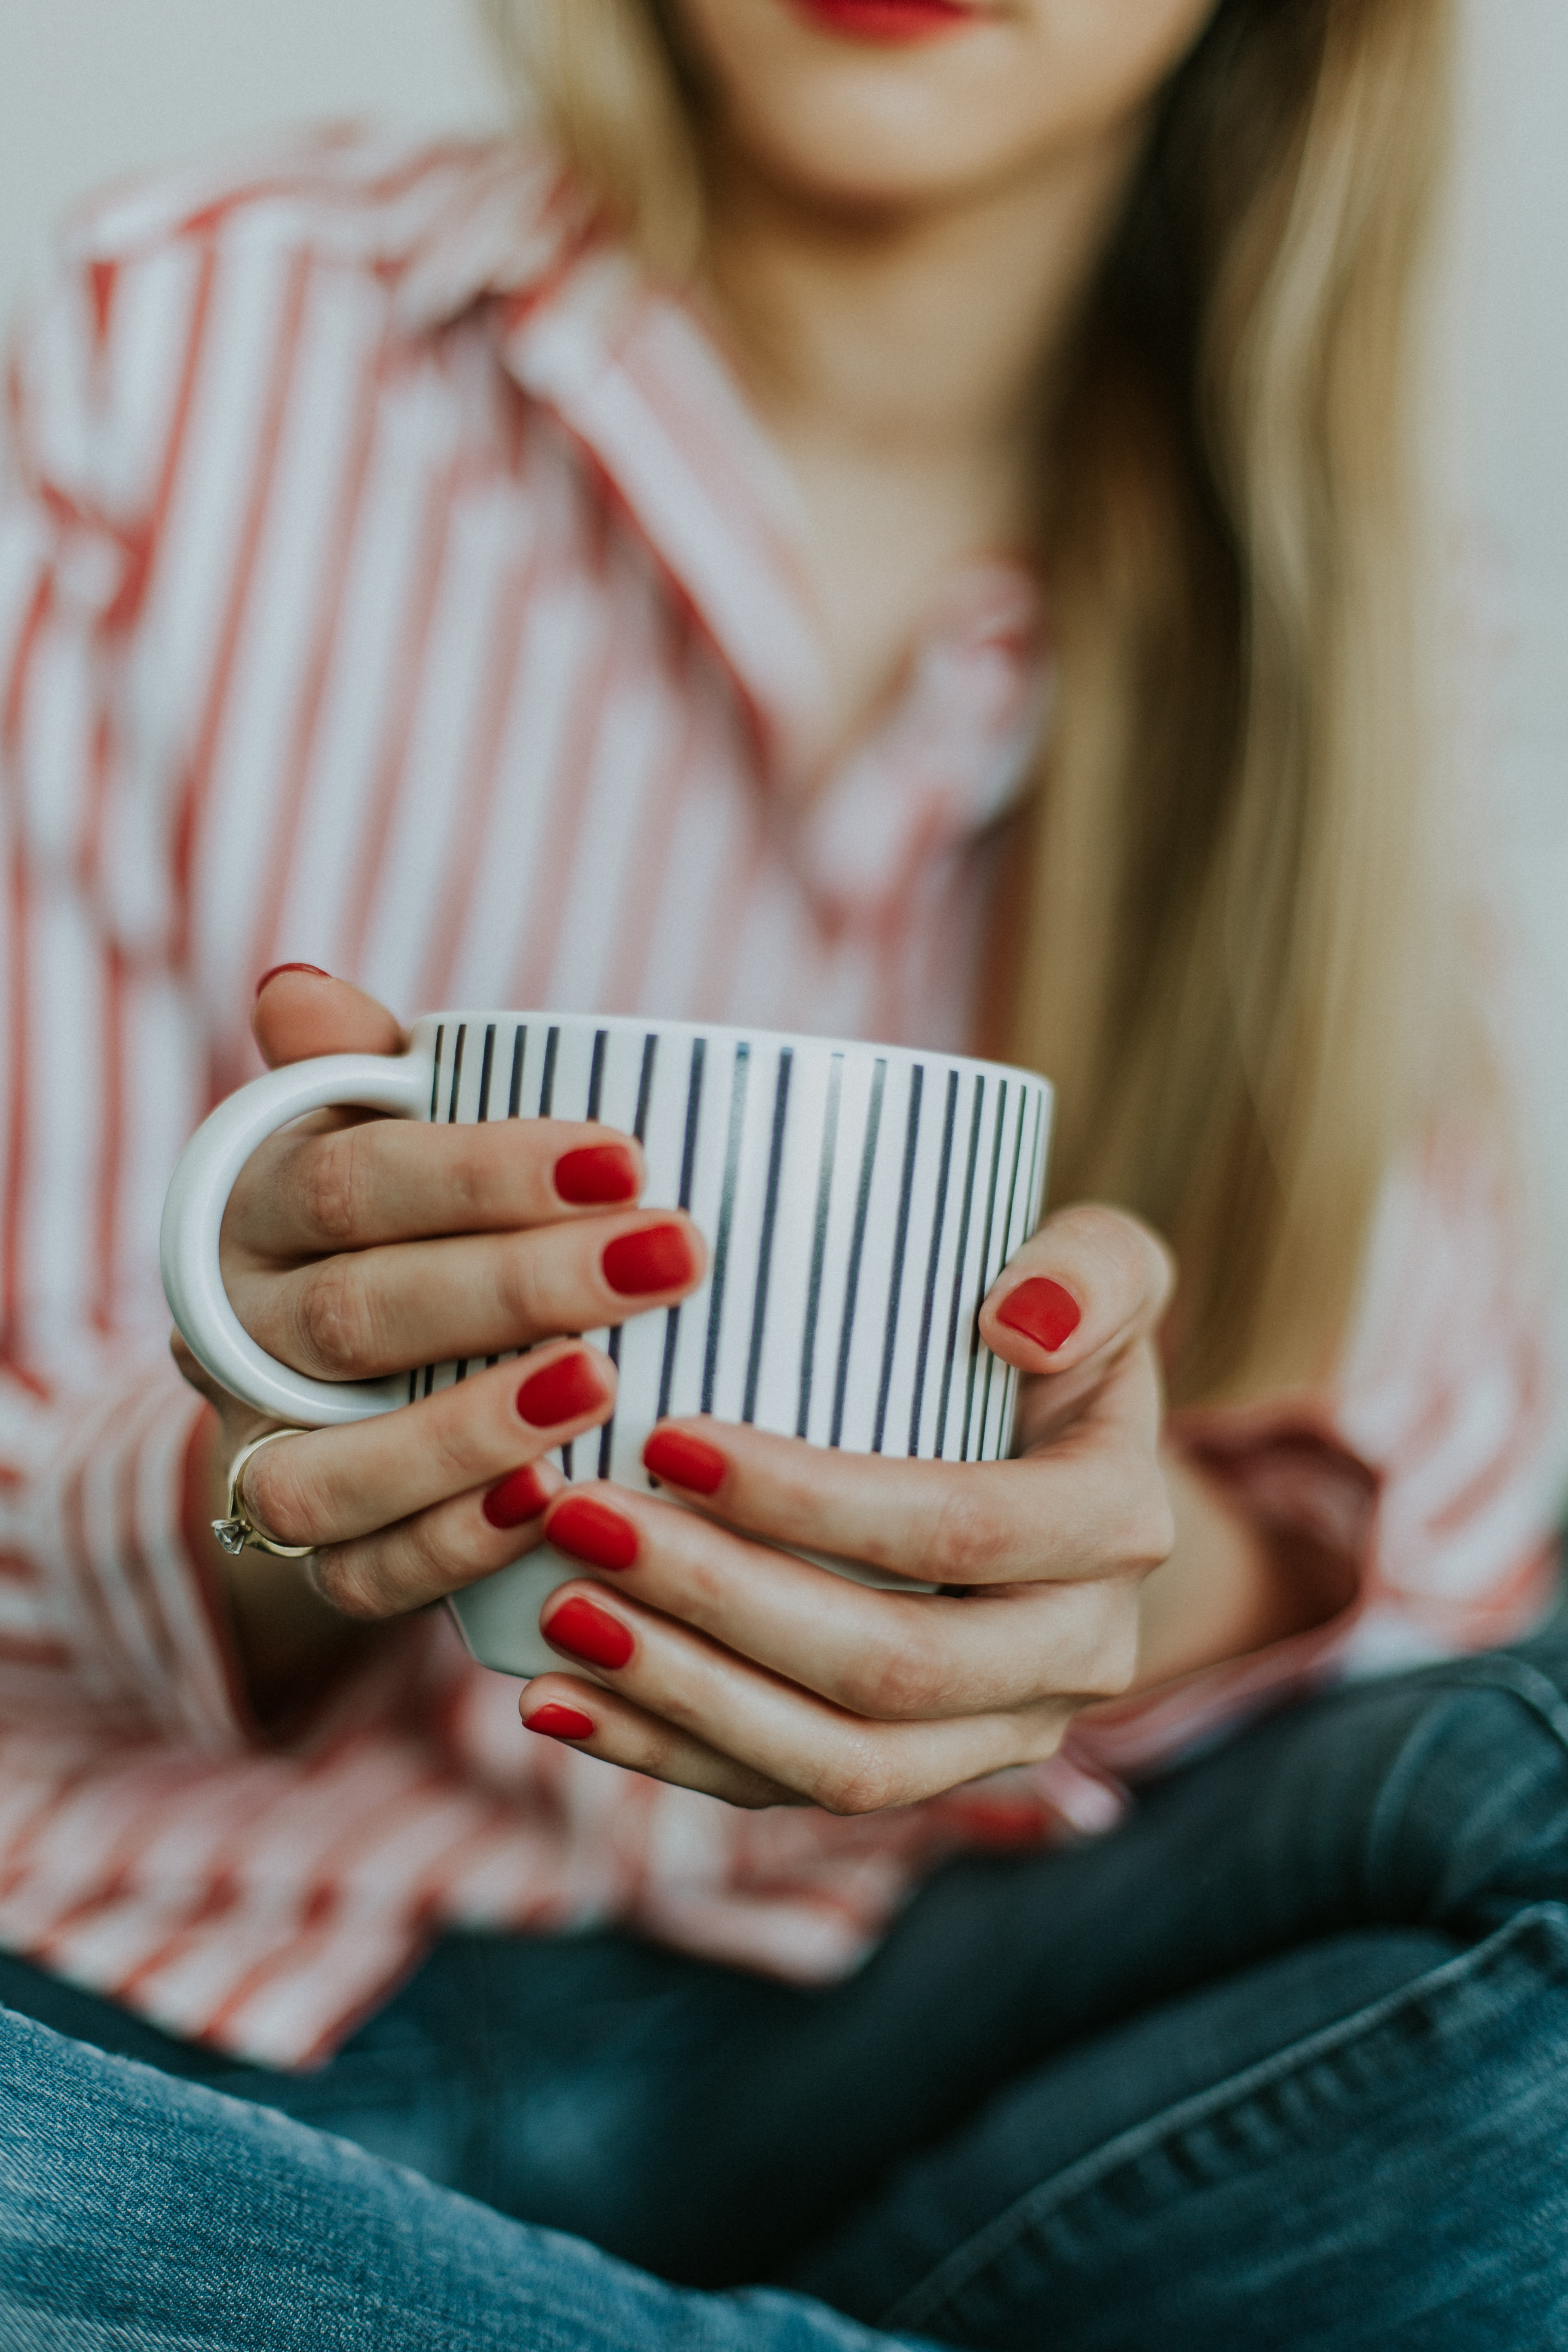 Girl with red nails holding cup